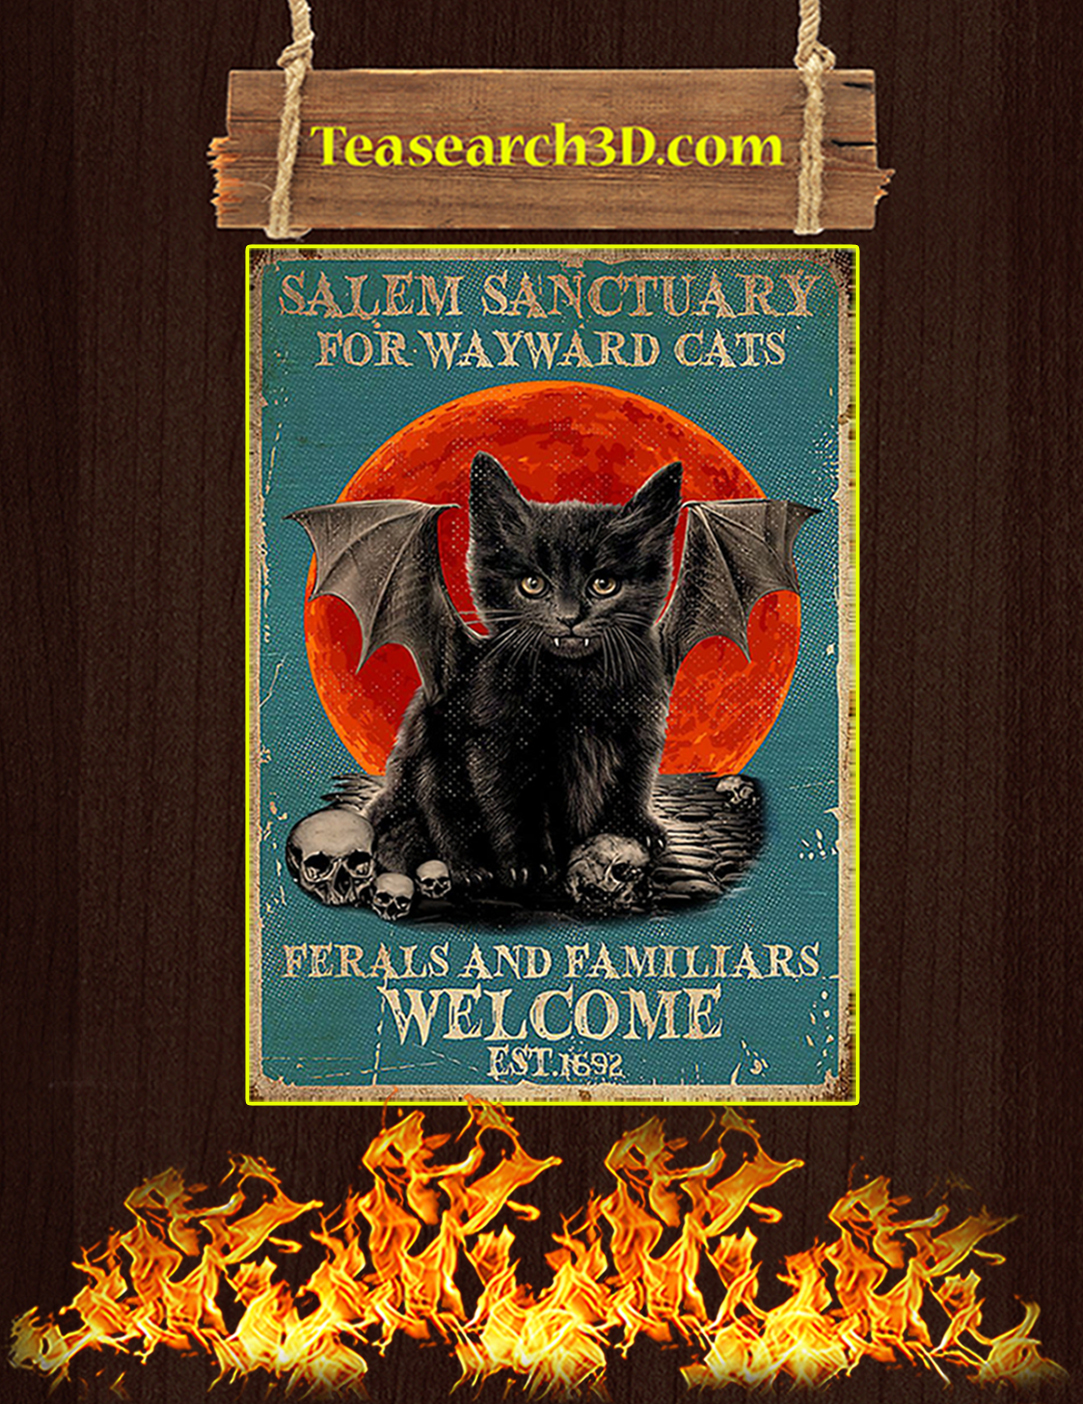 Salem sanctuary for wayward cats ferals and familiars welcome est 1962 poster A2